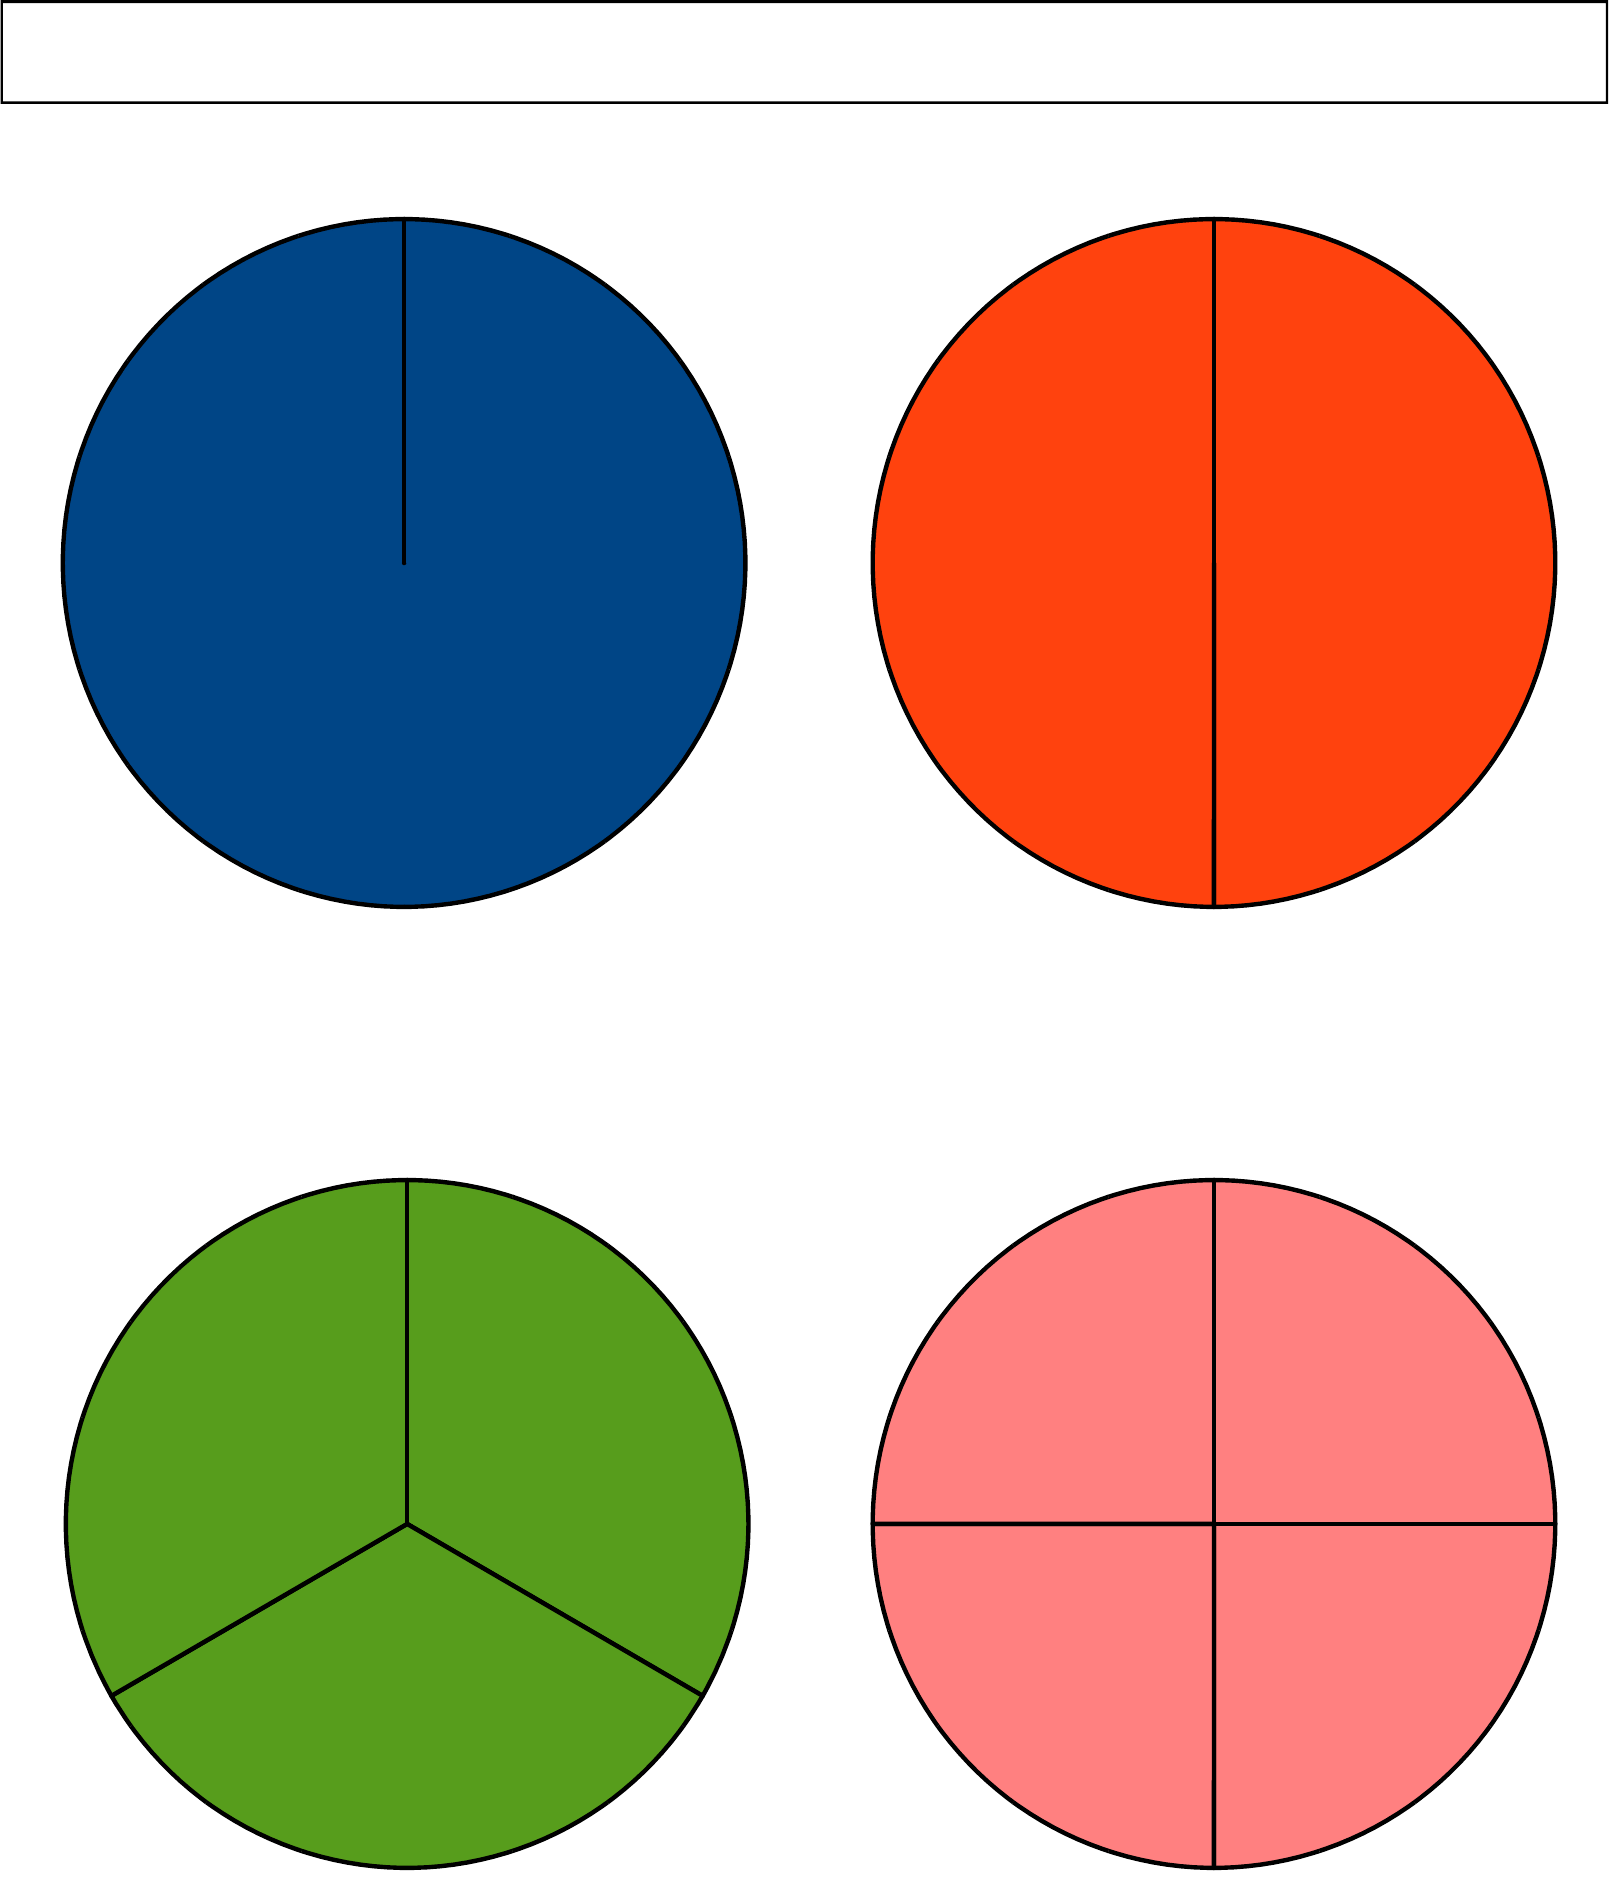 graphic about Printable Fraction Circles known as movement it mathâ workshops cost-free math classes math worksheets